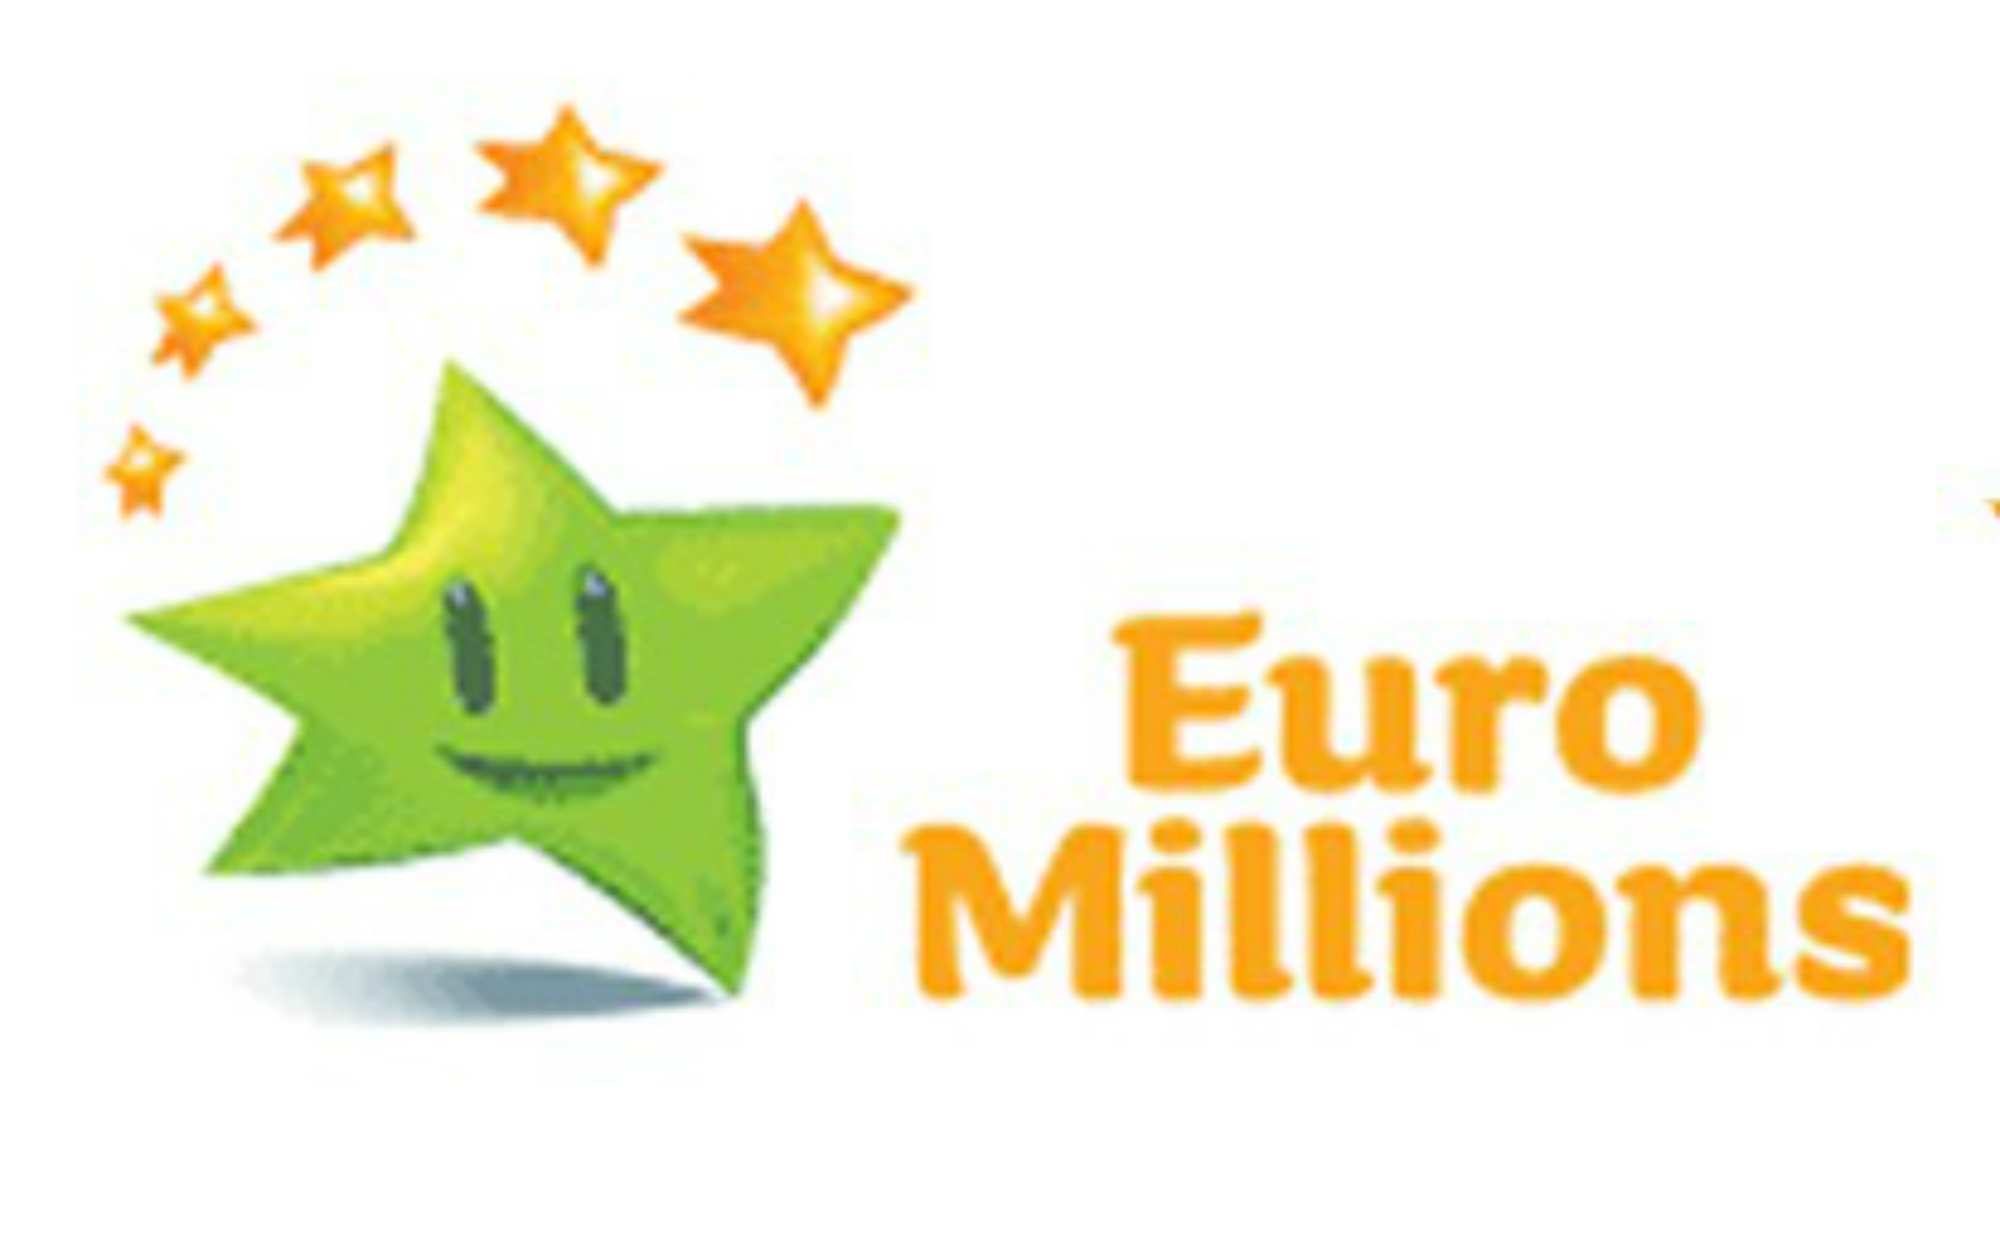 Euromillions results for friday 18th march 2016 - draw 886